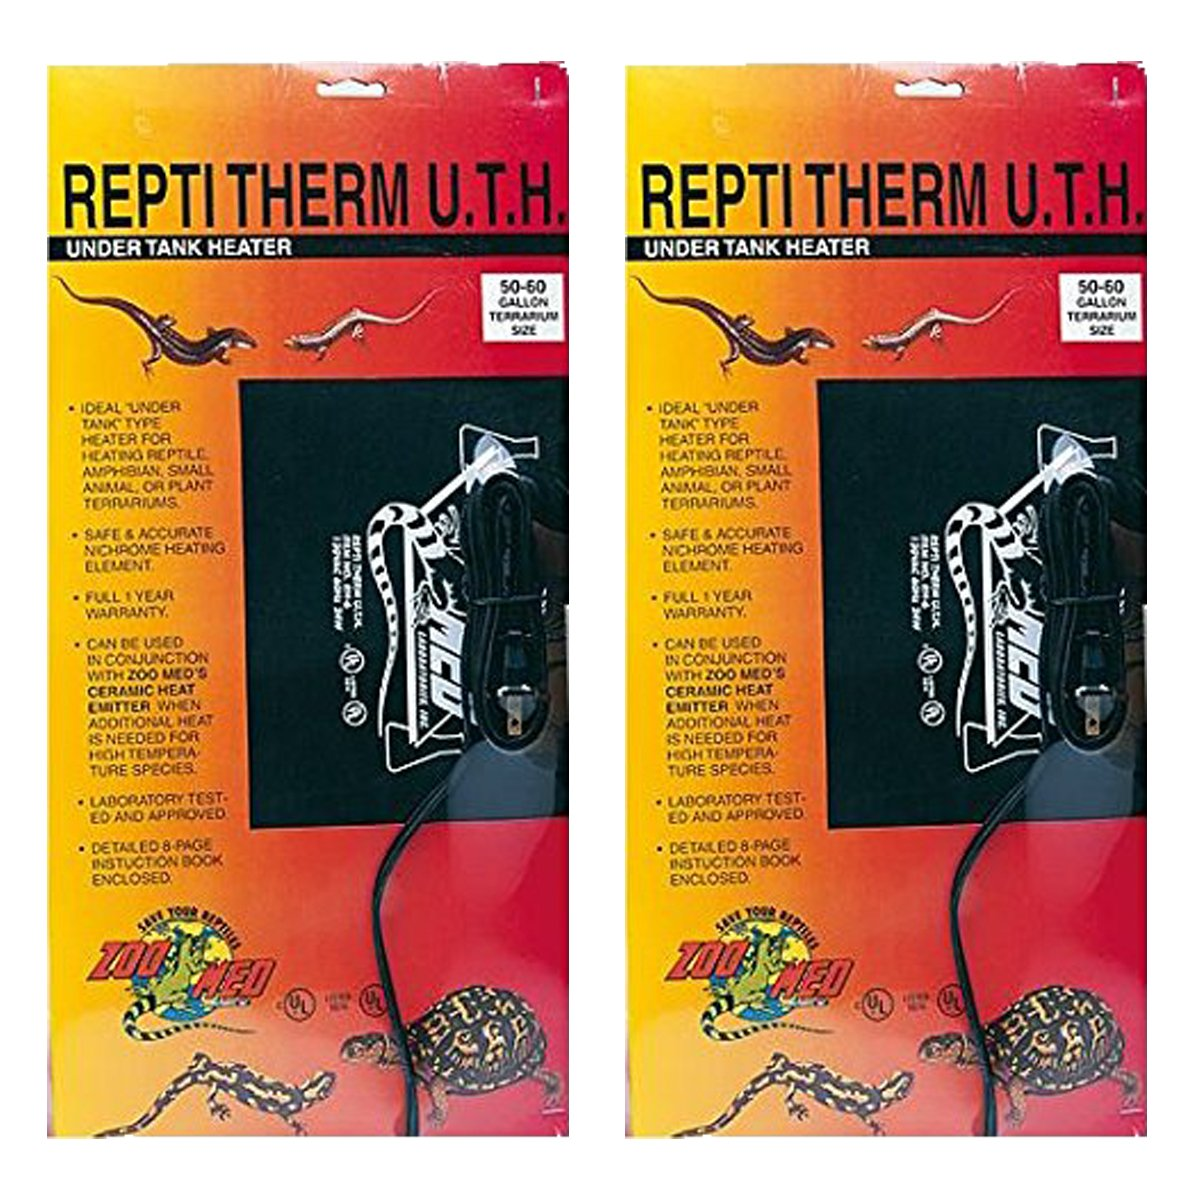 Zoo Med ReptiTherm Under Tank Heater, 30-40 Gallon (2 Pack) by Zoo Med